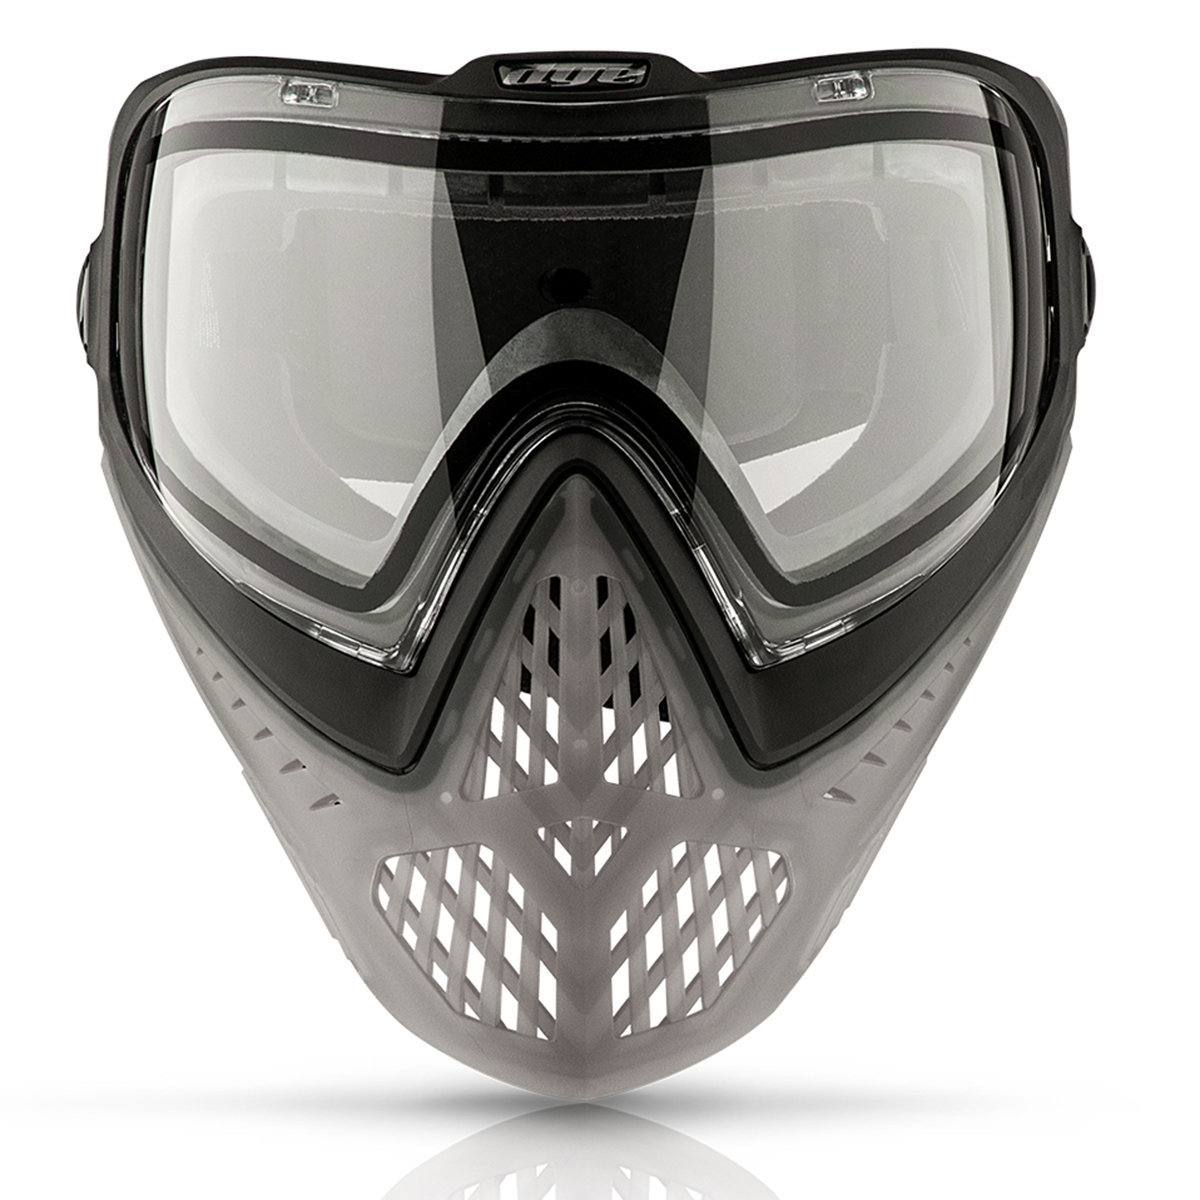 View larger image of Dye i5 Paintball Goggles